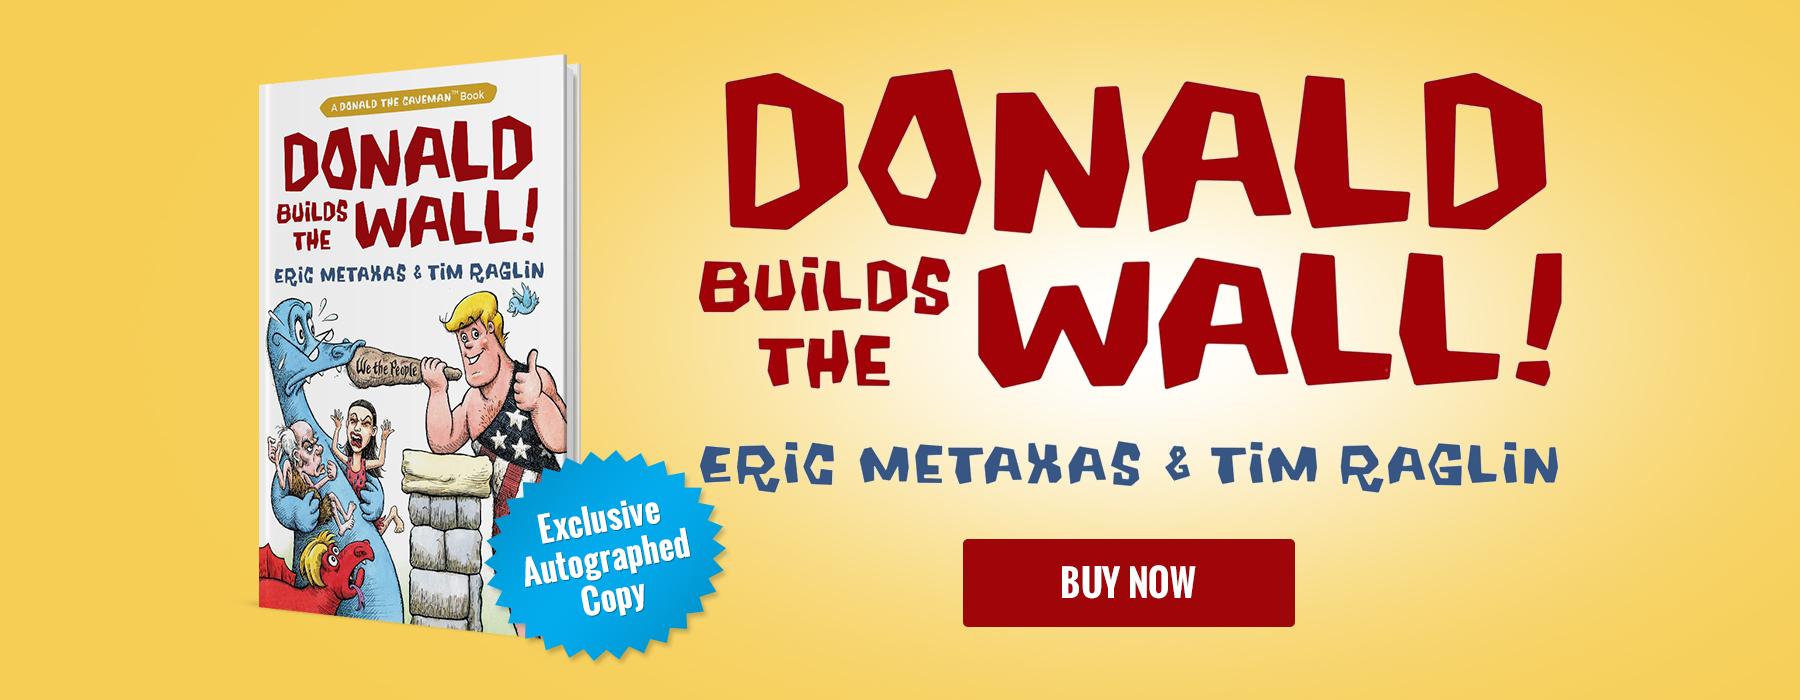 Donald builds the wall - buy now